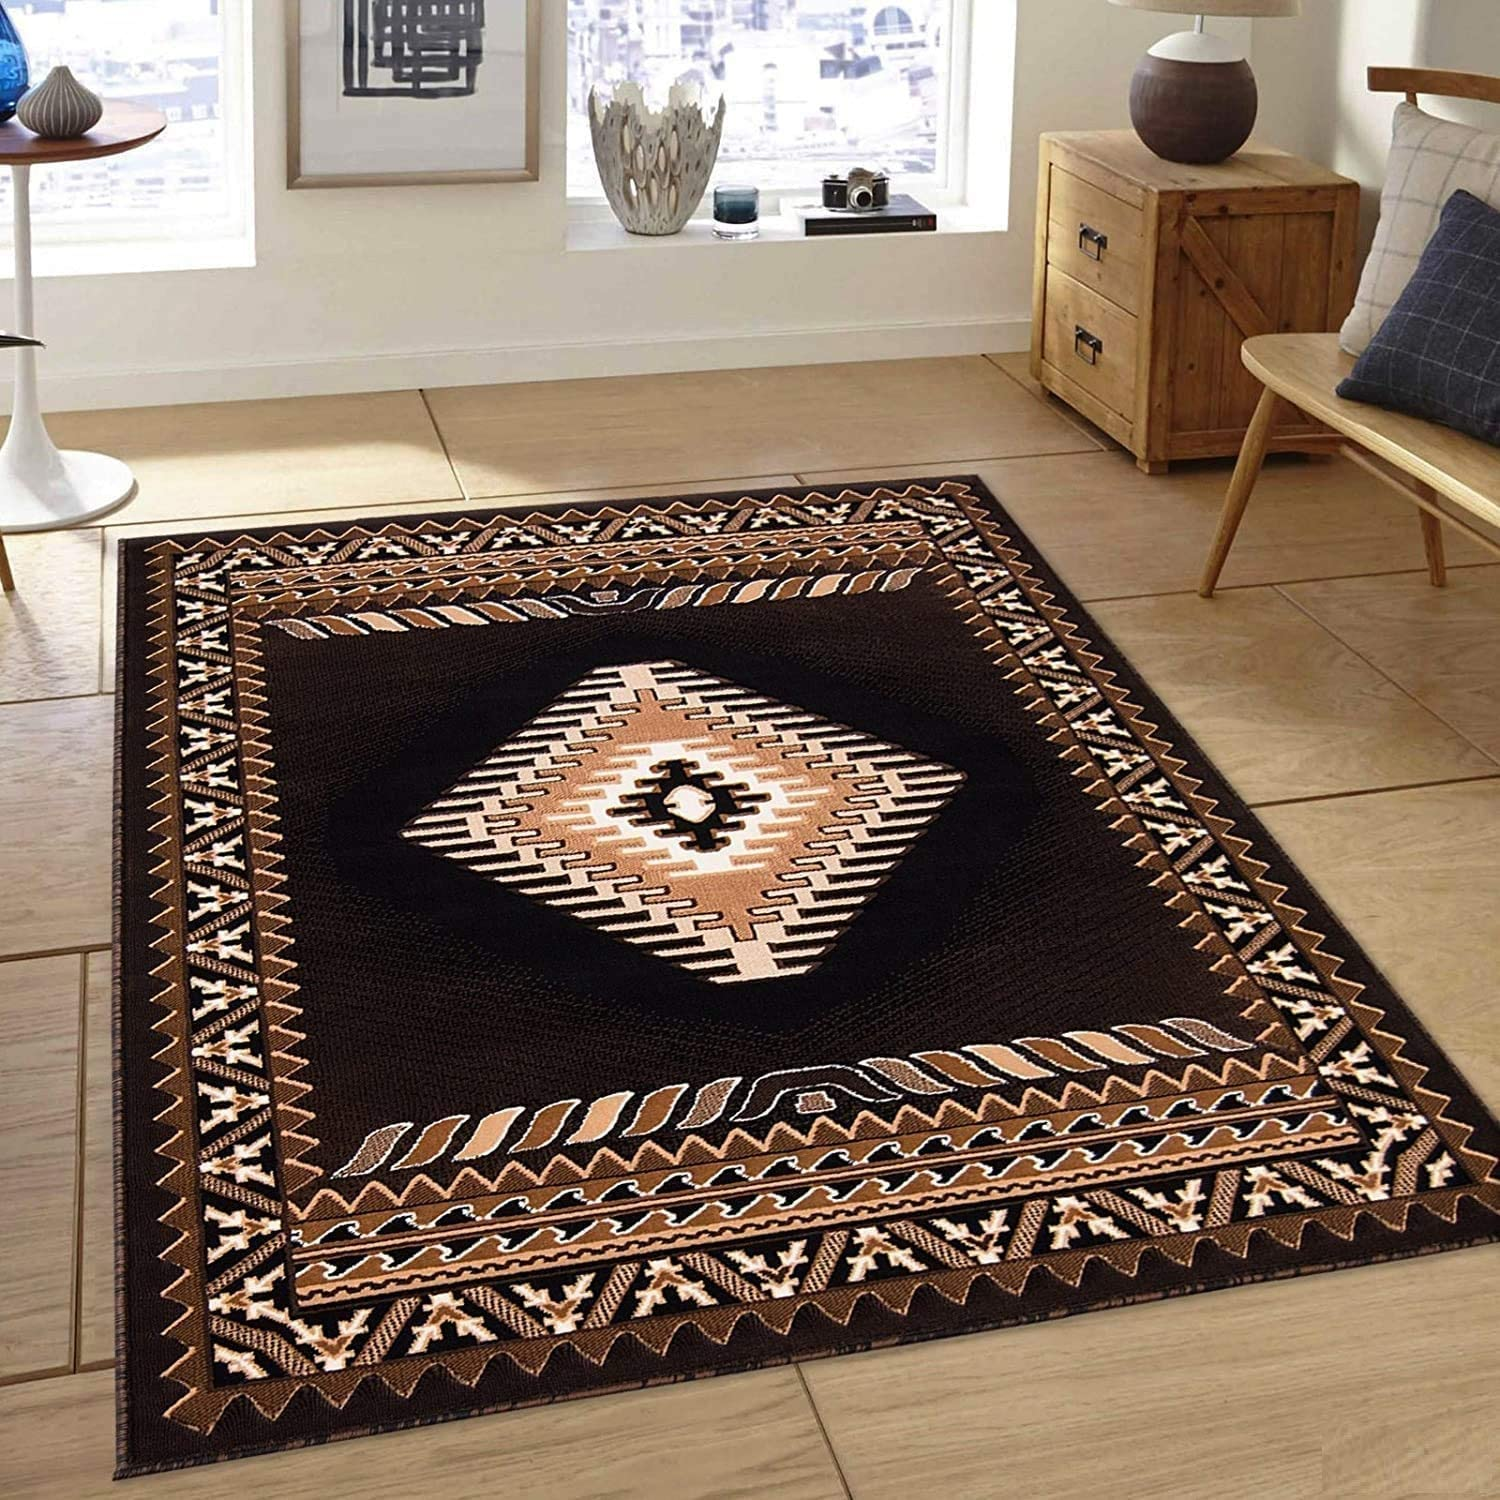 Champion Rugs Western Native American Indian Cash special price Max 56% OFF Carpet Navajo Aztec